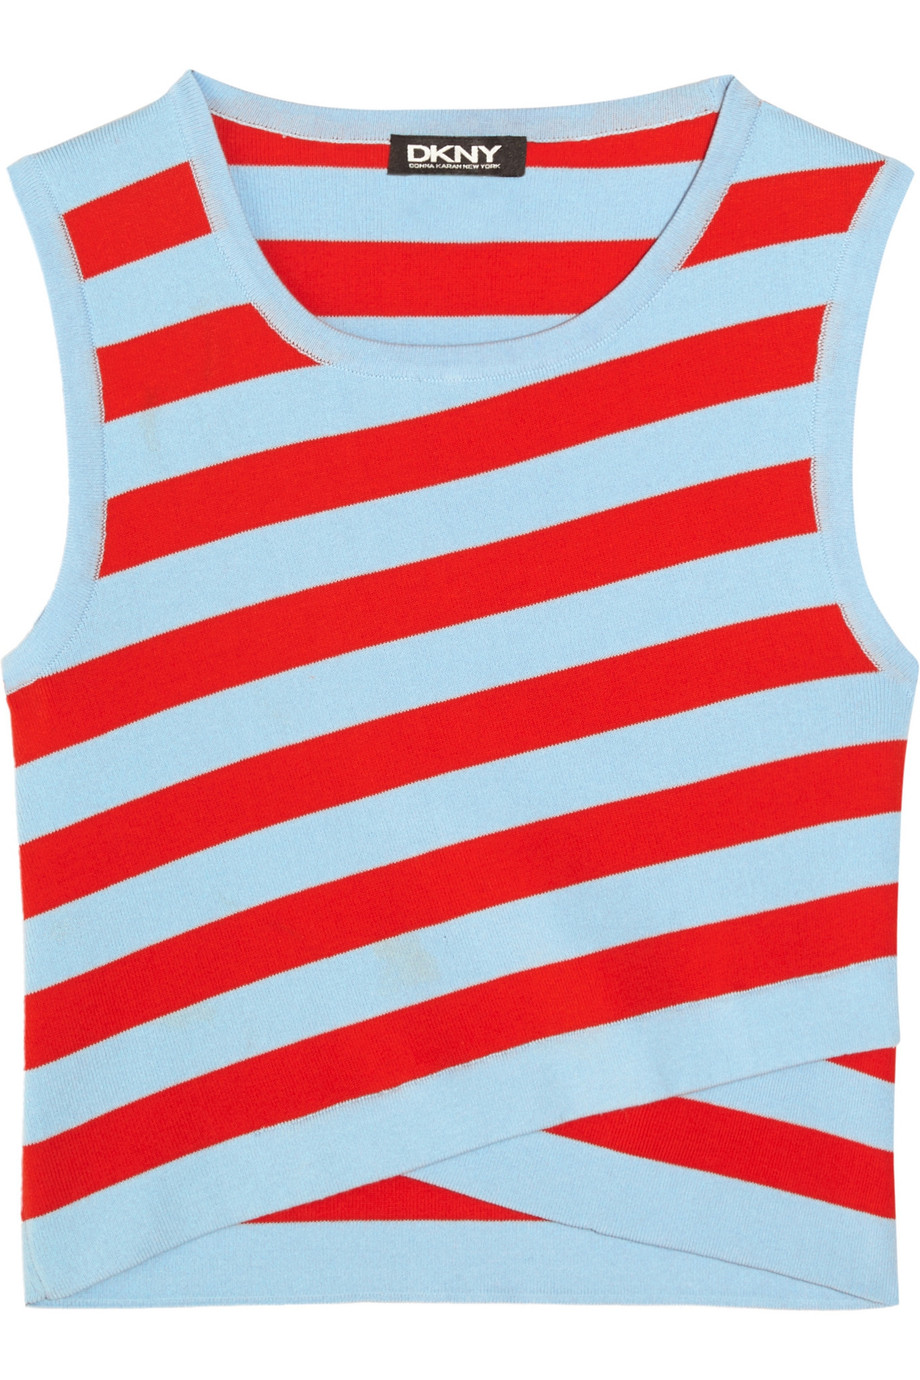 DKNY Cropped striped stretch cotton-blend top – 55% at THE OUTNET.COM